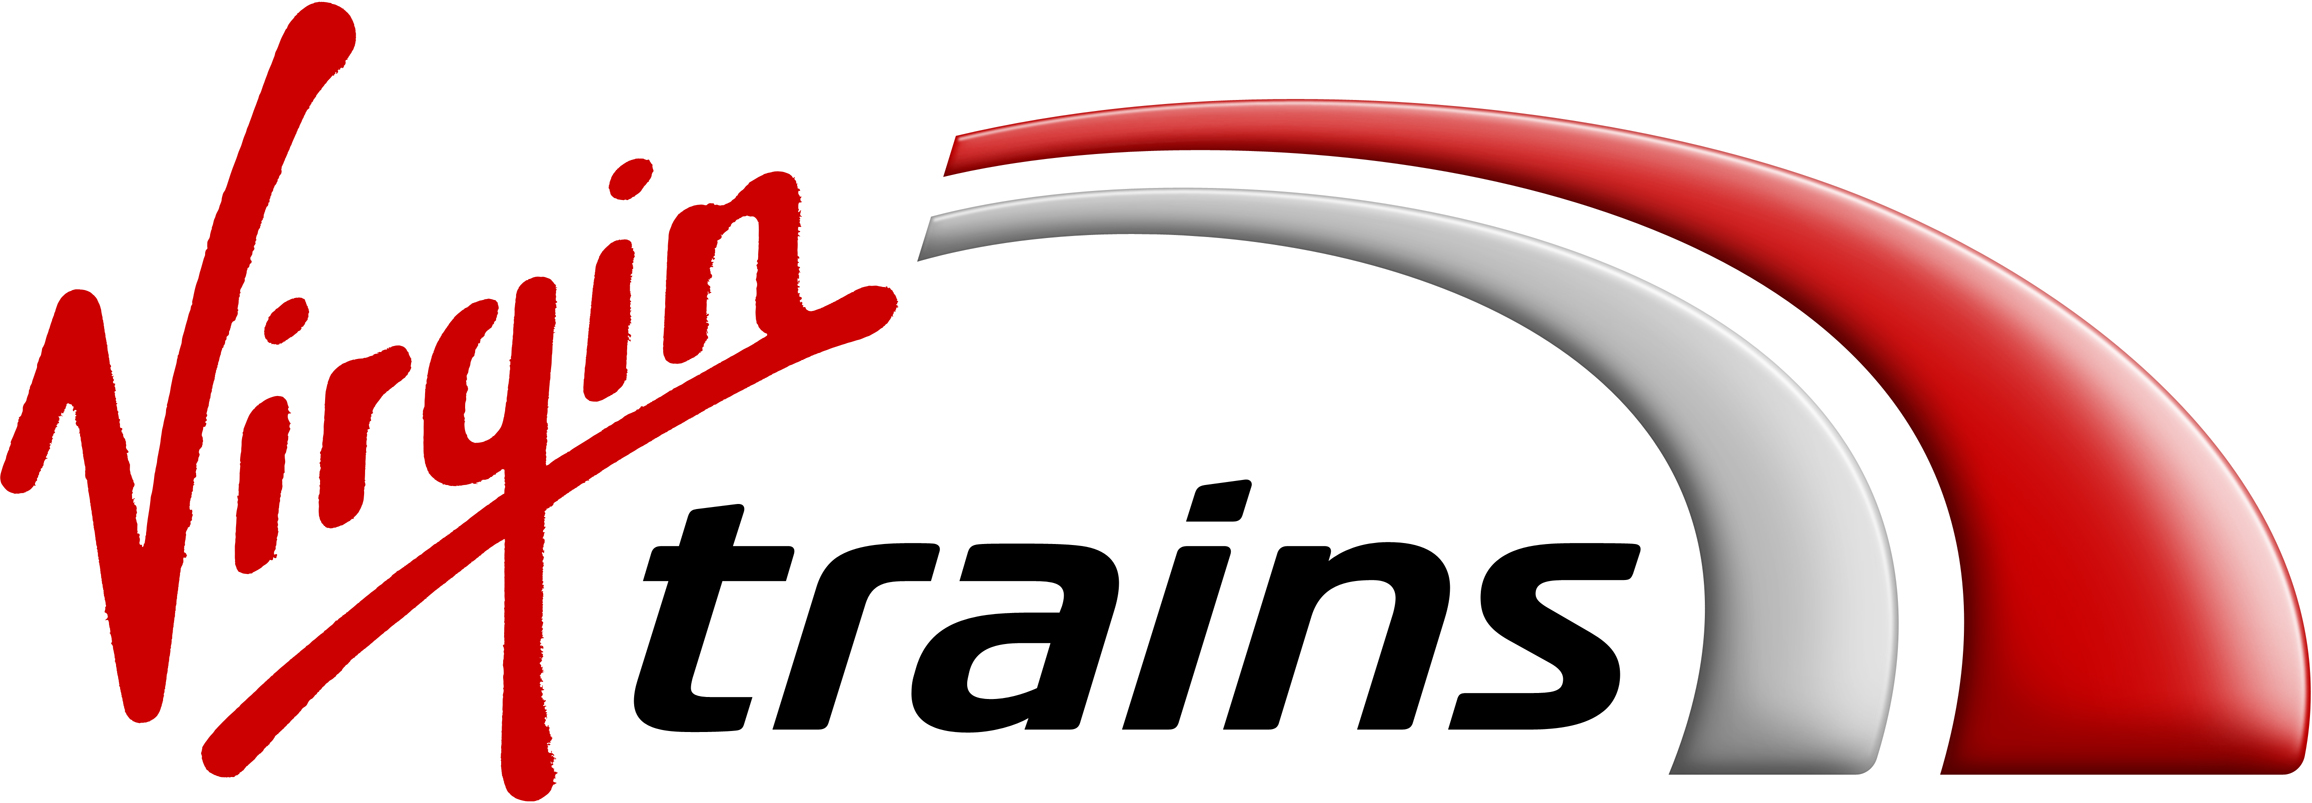 Image of Virgin Trains West Coast logo